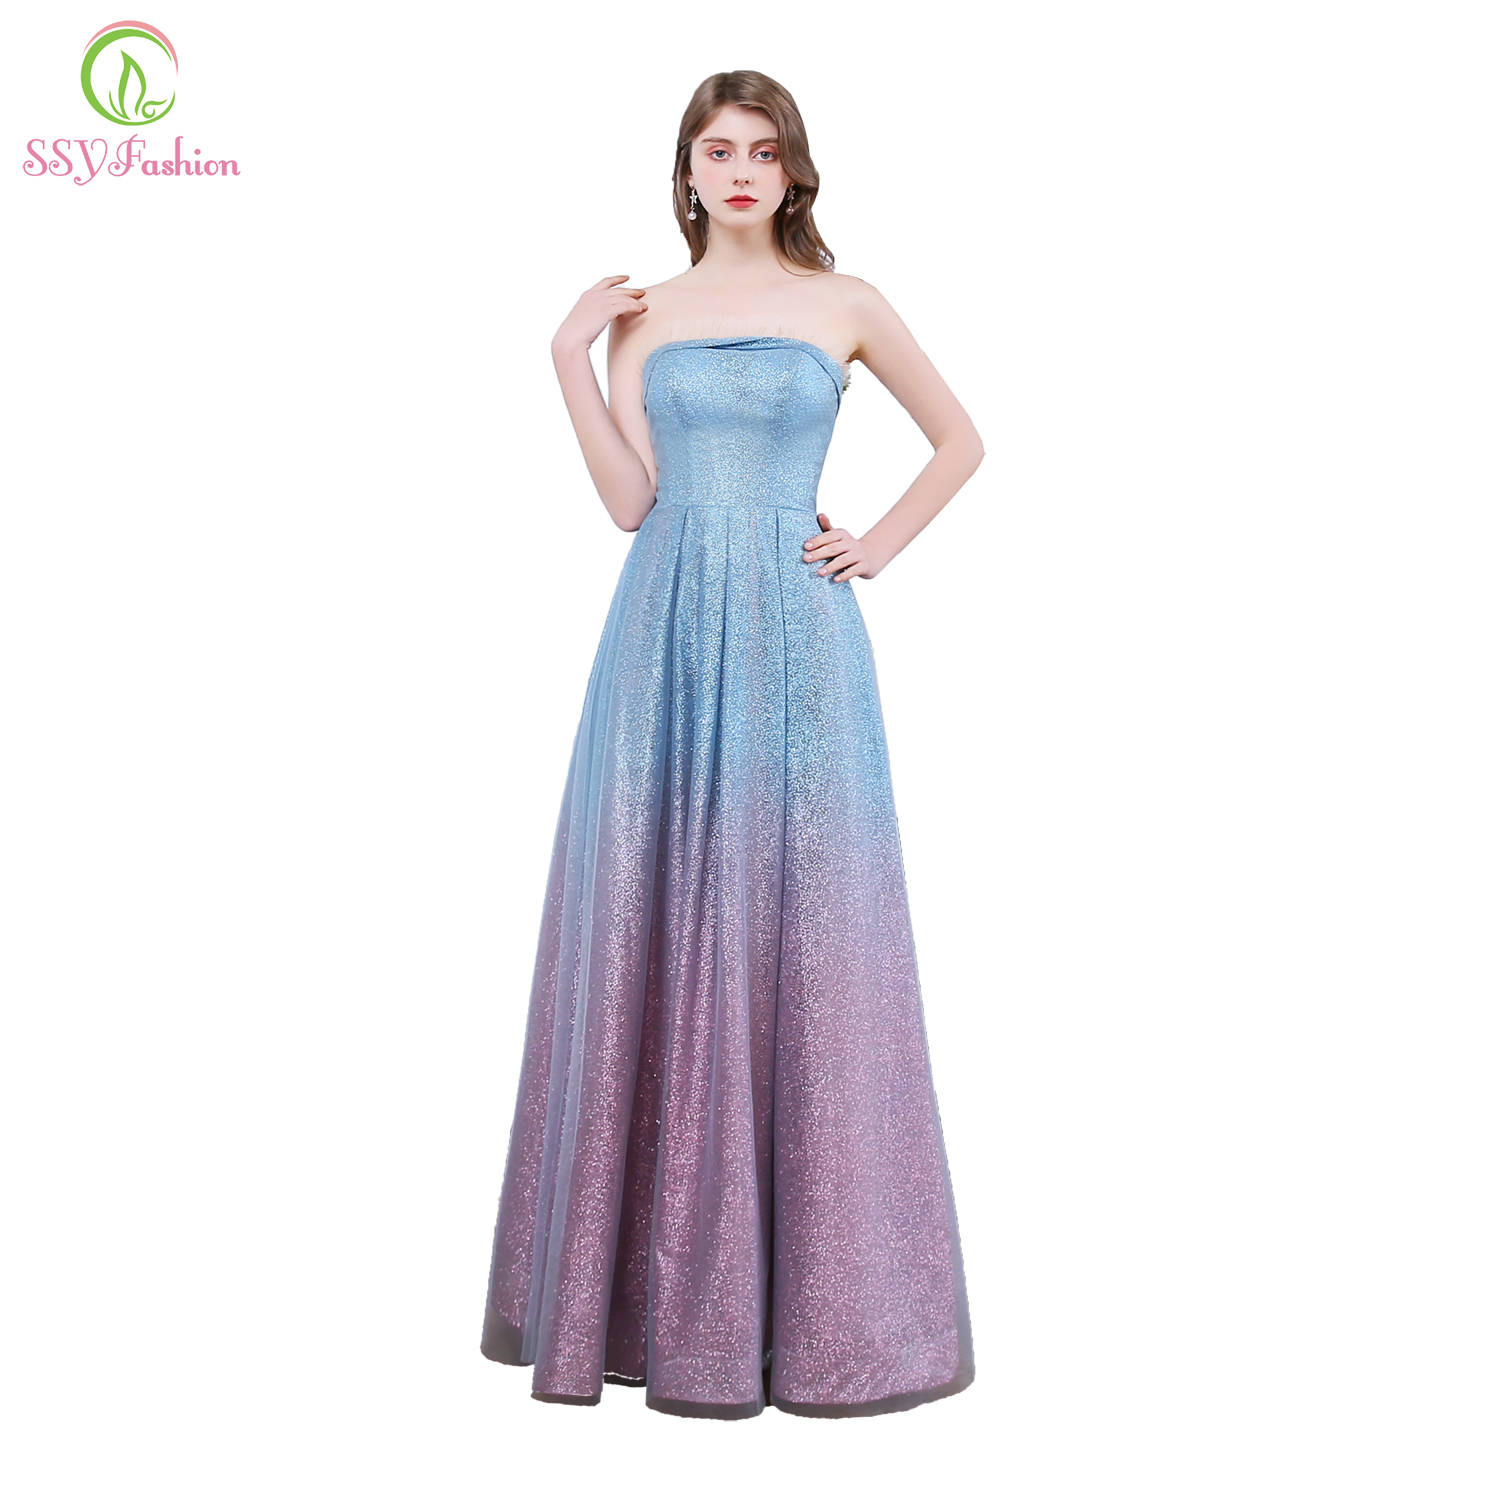 SSYFashion New Banquet Sparkling Evening Dress Strapless Sequins Gradient Blue Purple Dream Long Formal Gowns Vestido De Noche